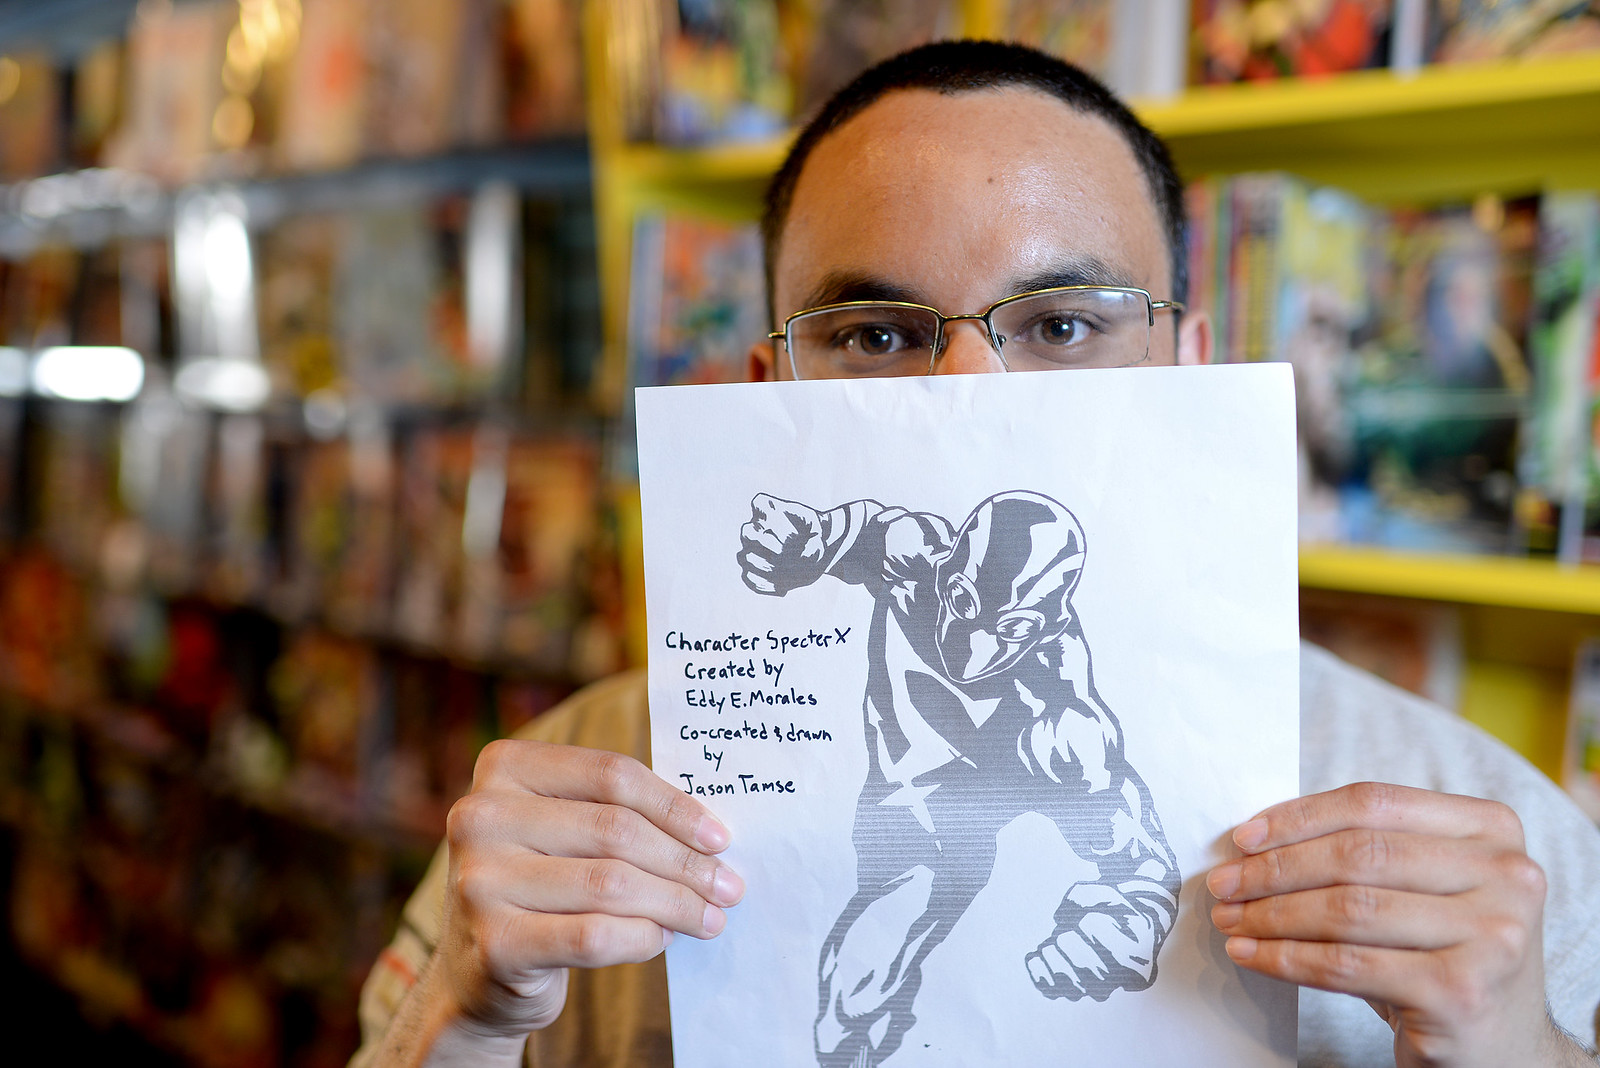 """Eddy Enrique Morales, alumnus of SF State with a BA in drama, holds up a drawing of Specter X, a character he created and calls """"San Francisco's first and very own Latino superhero."""" Morales aims to have his first comic, featuring Specter X, come out early 2014 with the help of funds he received through a fundraising website and the San Francisco community. Photo by Virginia Tieman / Xpress"""